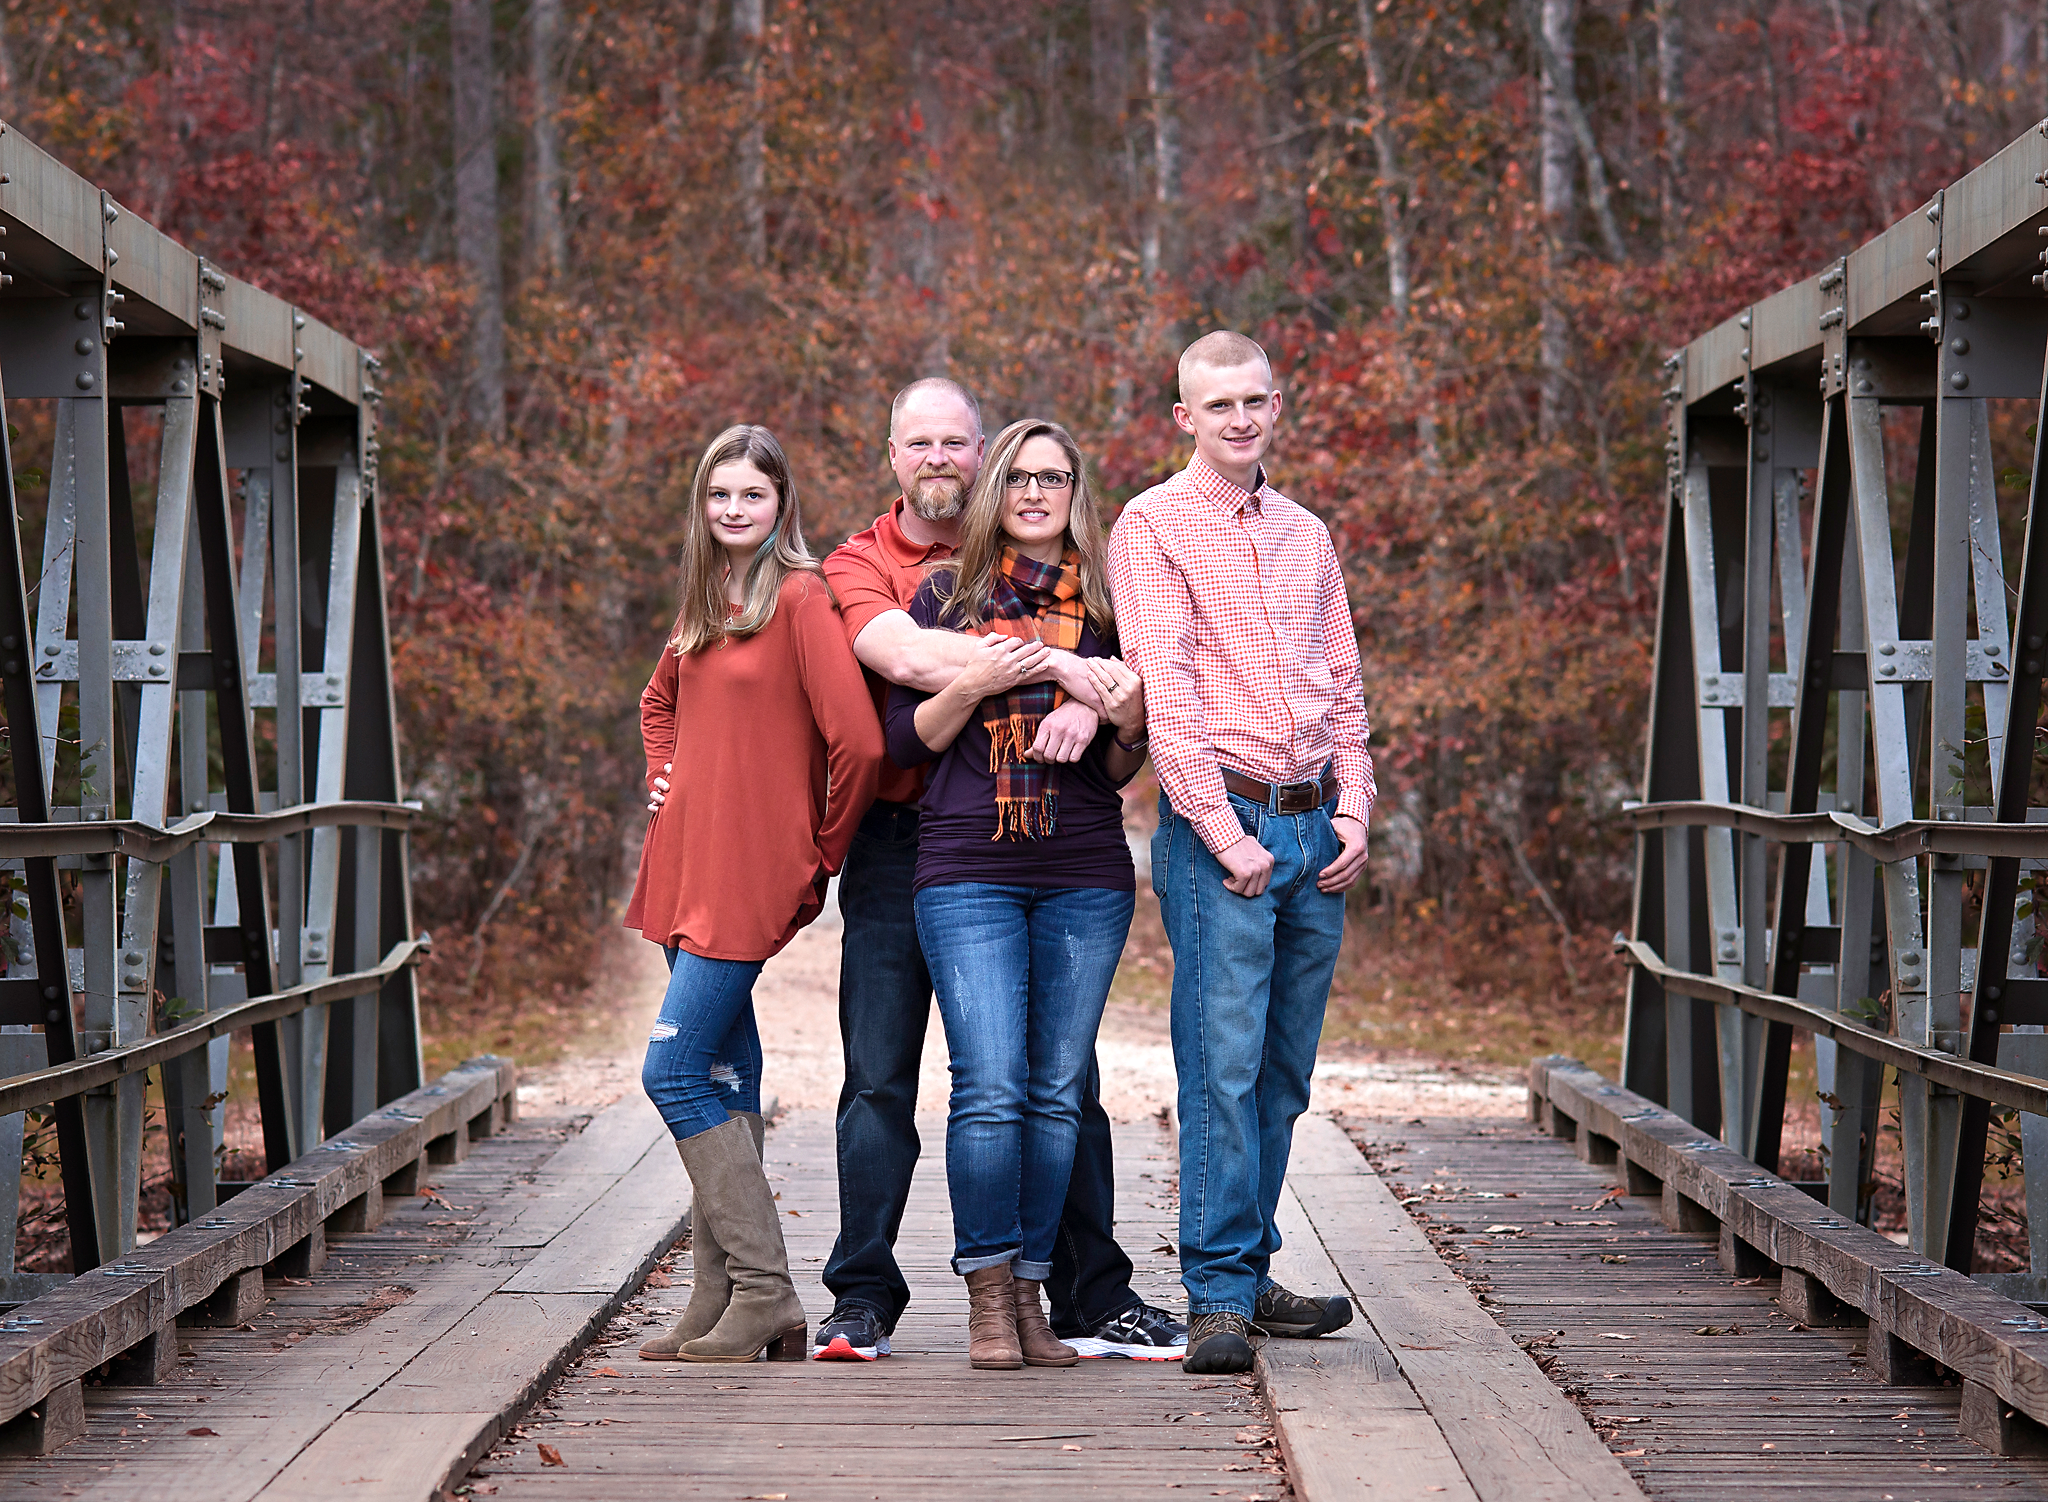 family $250 - Family sessions are a huge part of your story! My goal is to capture genuine family interaction (and a few posed) that you can't wait to hang on your wall. Warm memories with the people you love most! Family sessions are on location for up to 5 family members, $10 for each additional family member.Family sessions include:- a pre-consultation to discuss styling and vision- time and talent of photographer- up to 1 hour session time- private online proofing gallery with up to 20 proofs for you to choose your final 10 imagesI will then fully edit your final 10 images and deliver them via digital download with print release. All images are high-resolution and are printable up to 8x10.**Additional digital images, prints and products are available and may be purchased separately.